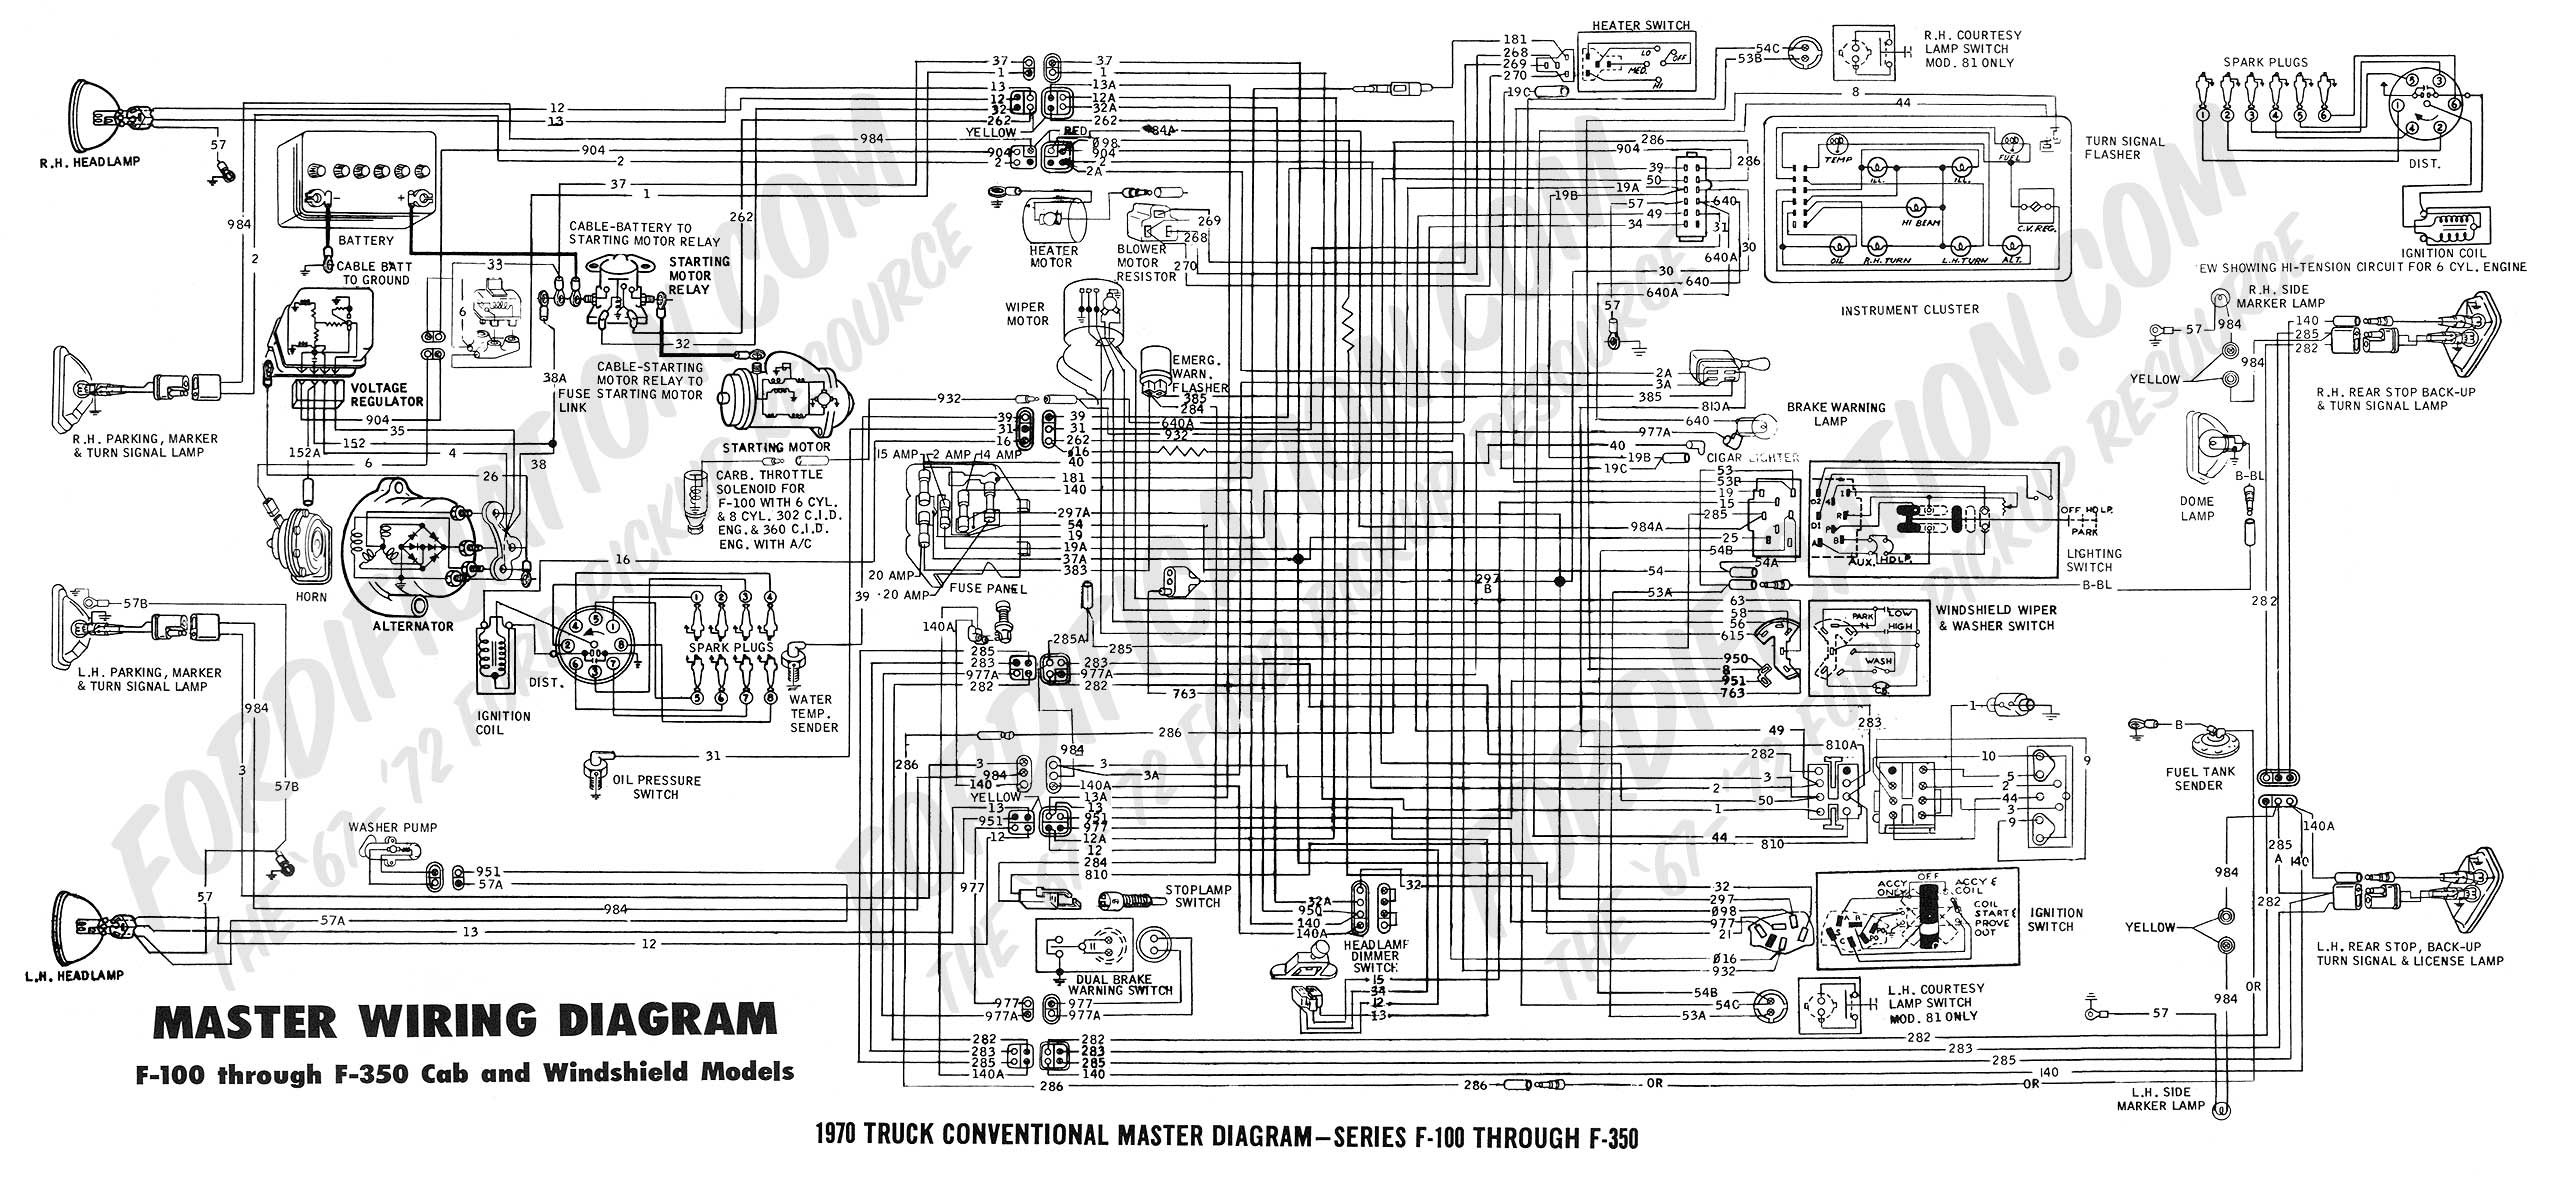 1964 Ford F100 Wiring Diagram Not Lossing Thunderbird Fuel 1970 Ignition Todays Rh 12 14 10 1813weddingbarn Com Truck Switch